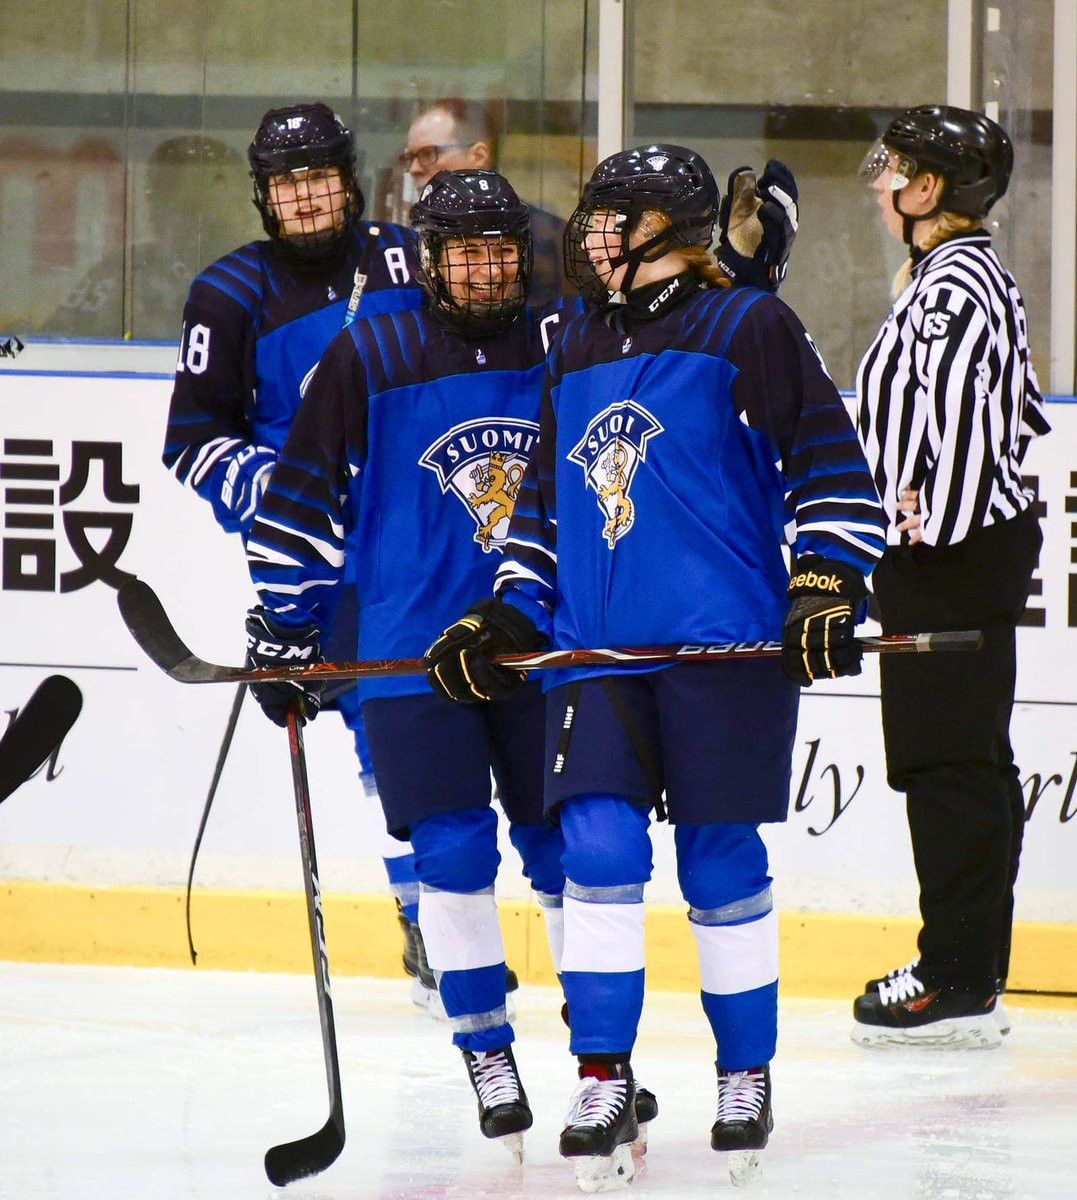 Finland celebrate defeating Sweden at the IIHF Under-18 Women's World Championship in Obihiro ©IIHF